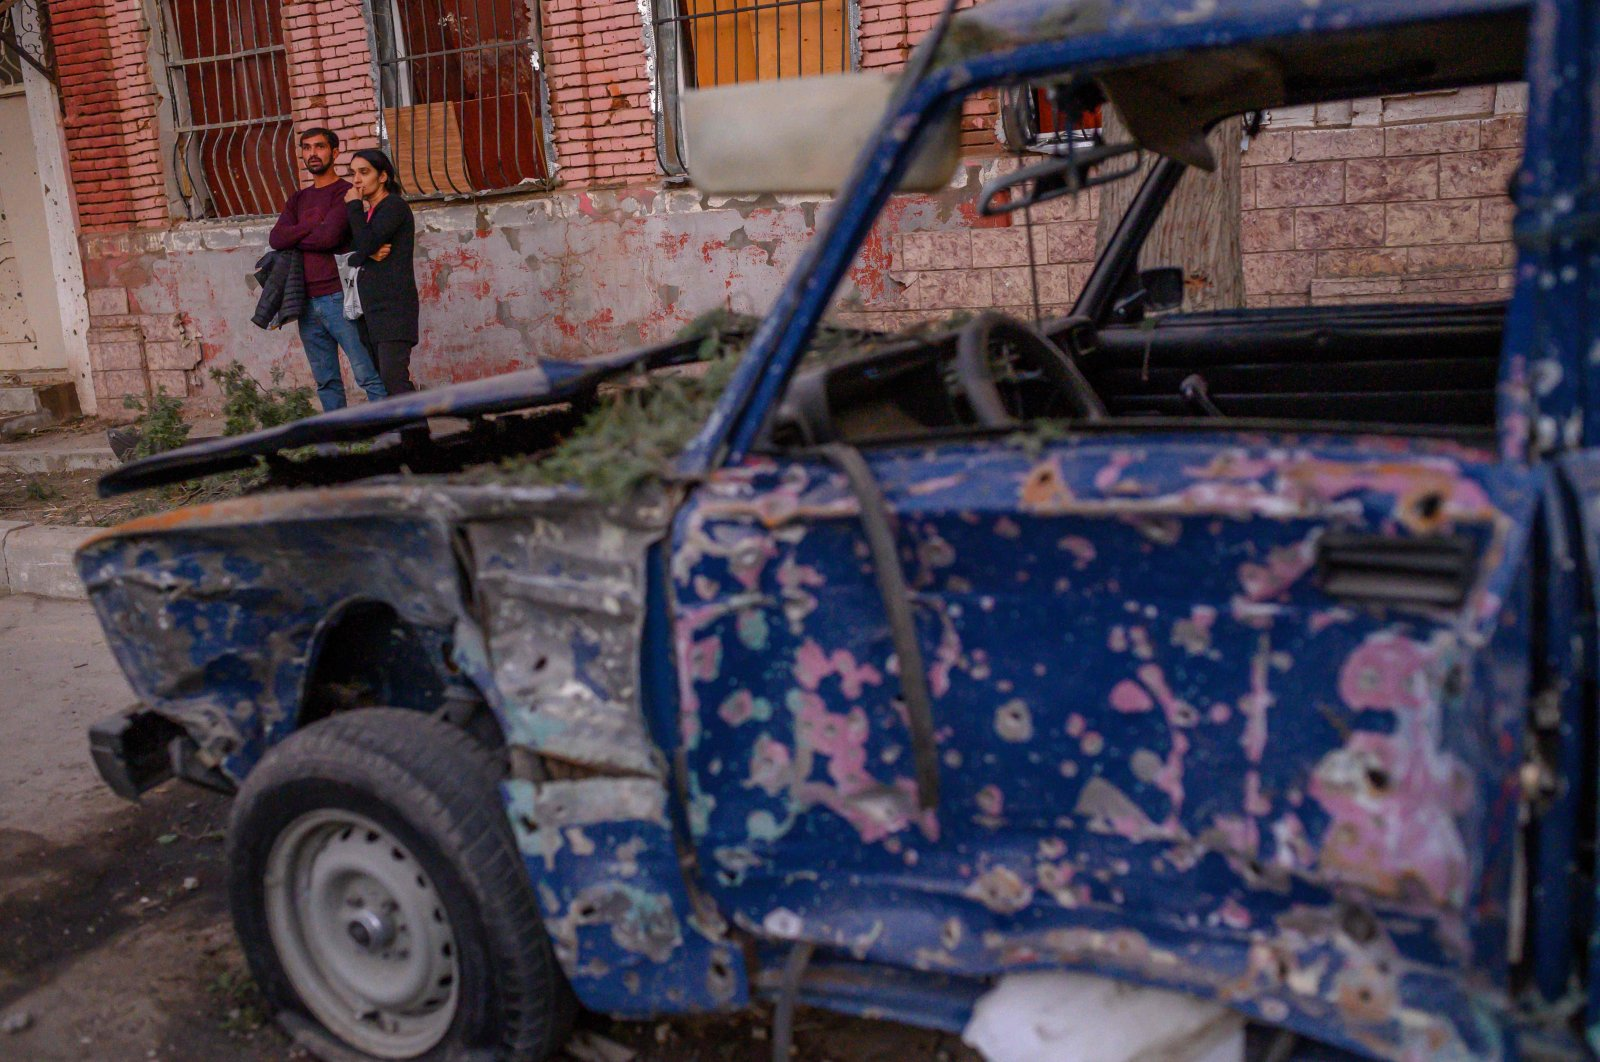 Local residents stand in a street near a damaged car after it was hit by a missile in Gandja, Azerbaijan, Oct. 8, 2020. (AFP Photo)